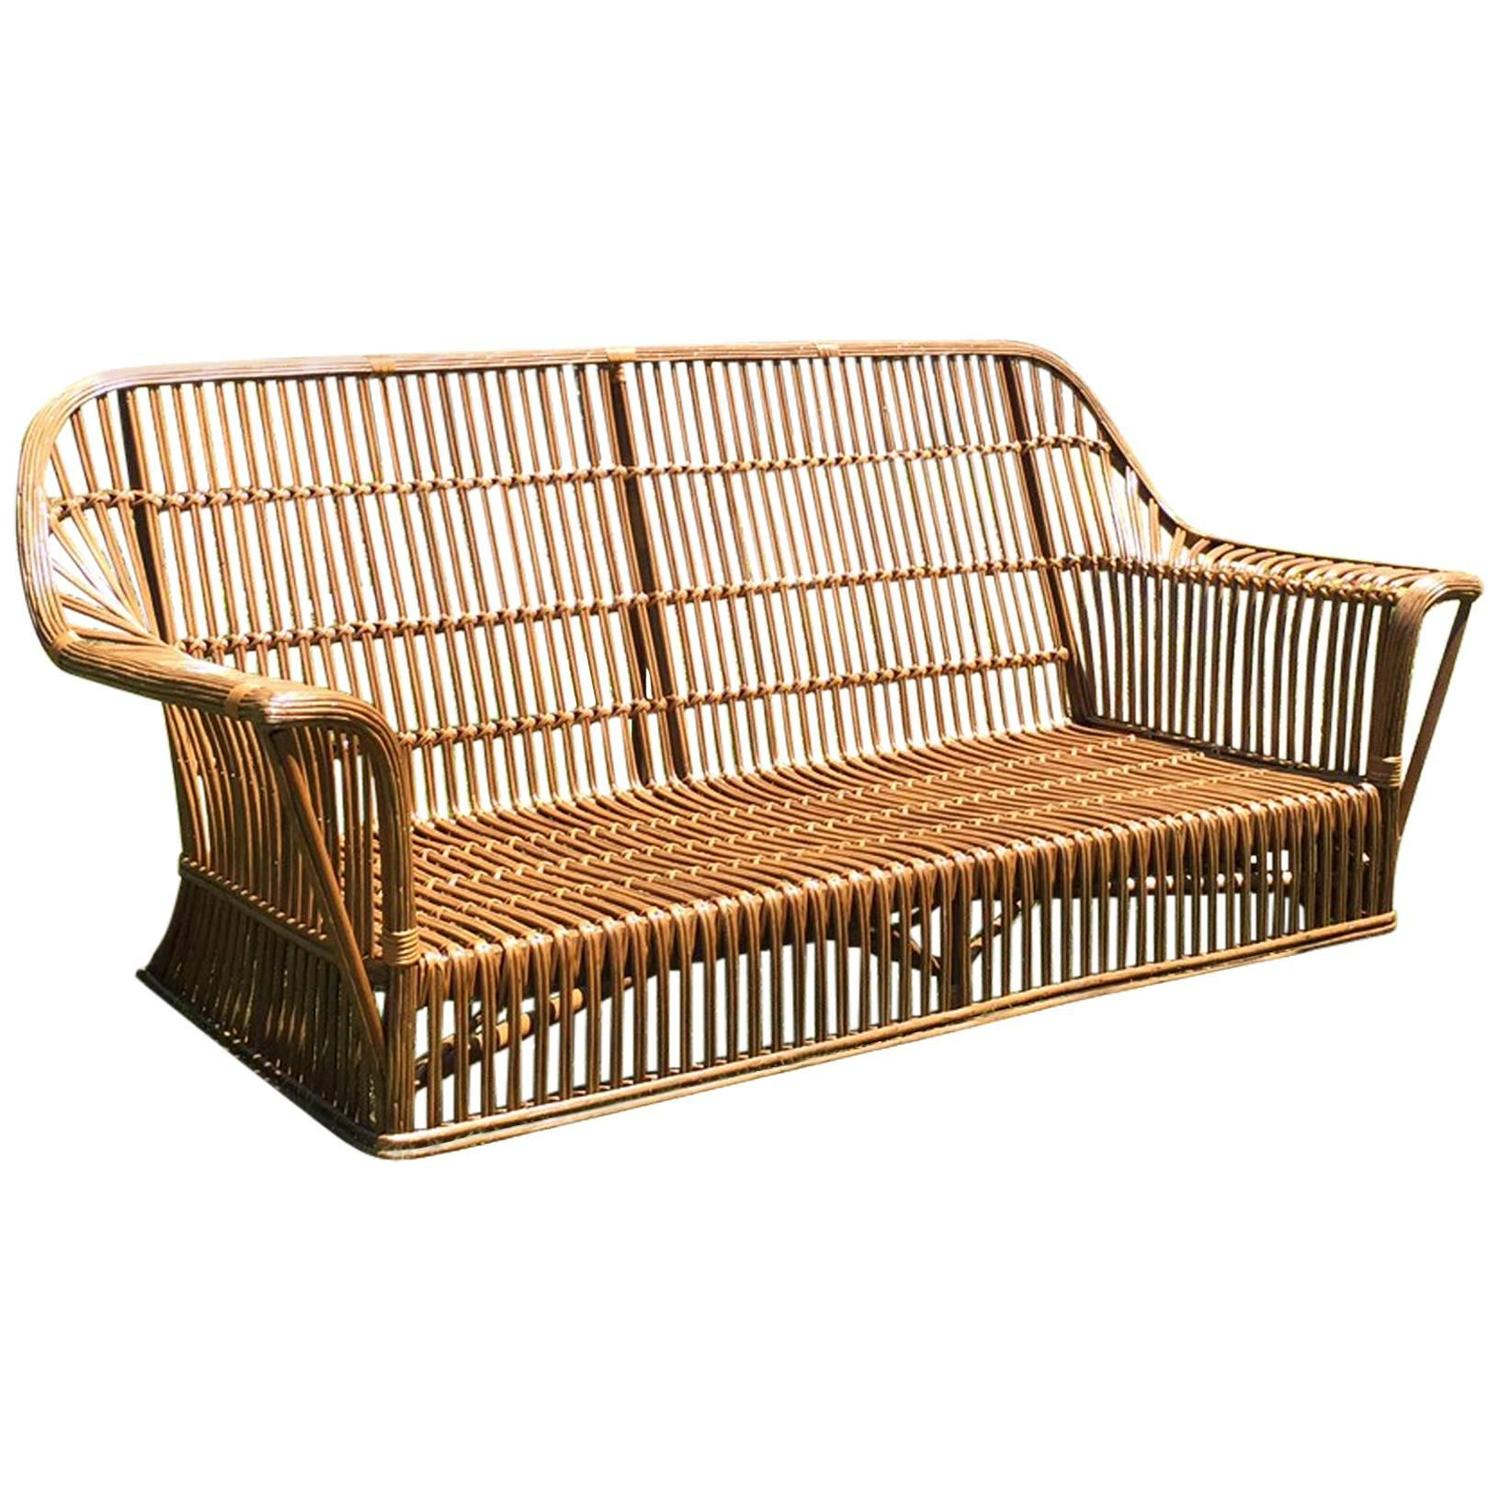 Antique ficks reed stick wicker sofa at 1stdibs for Wicker reed